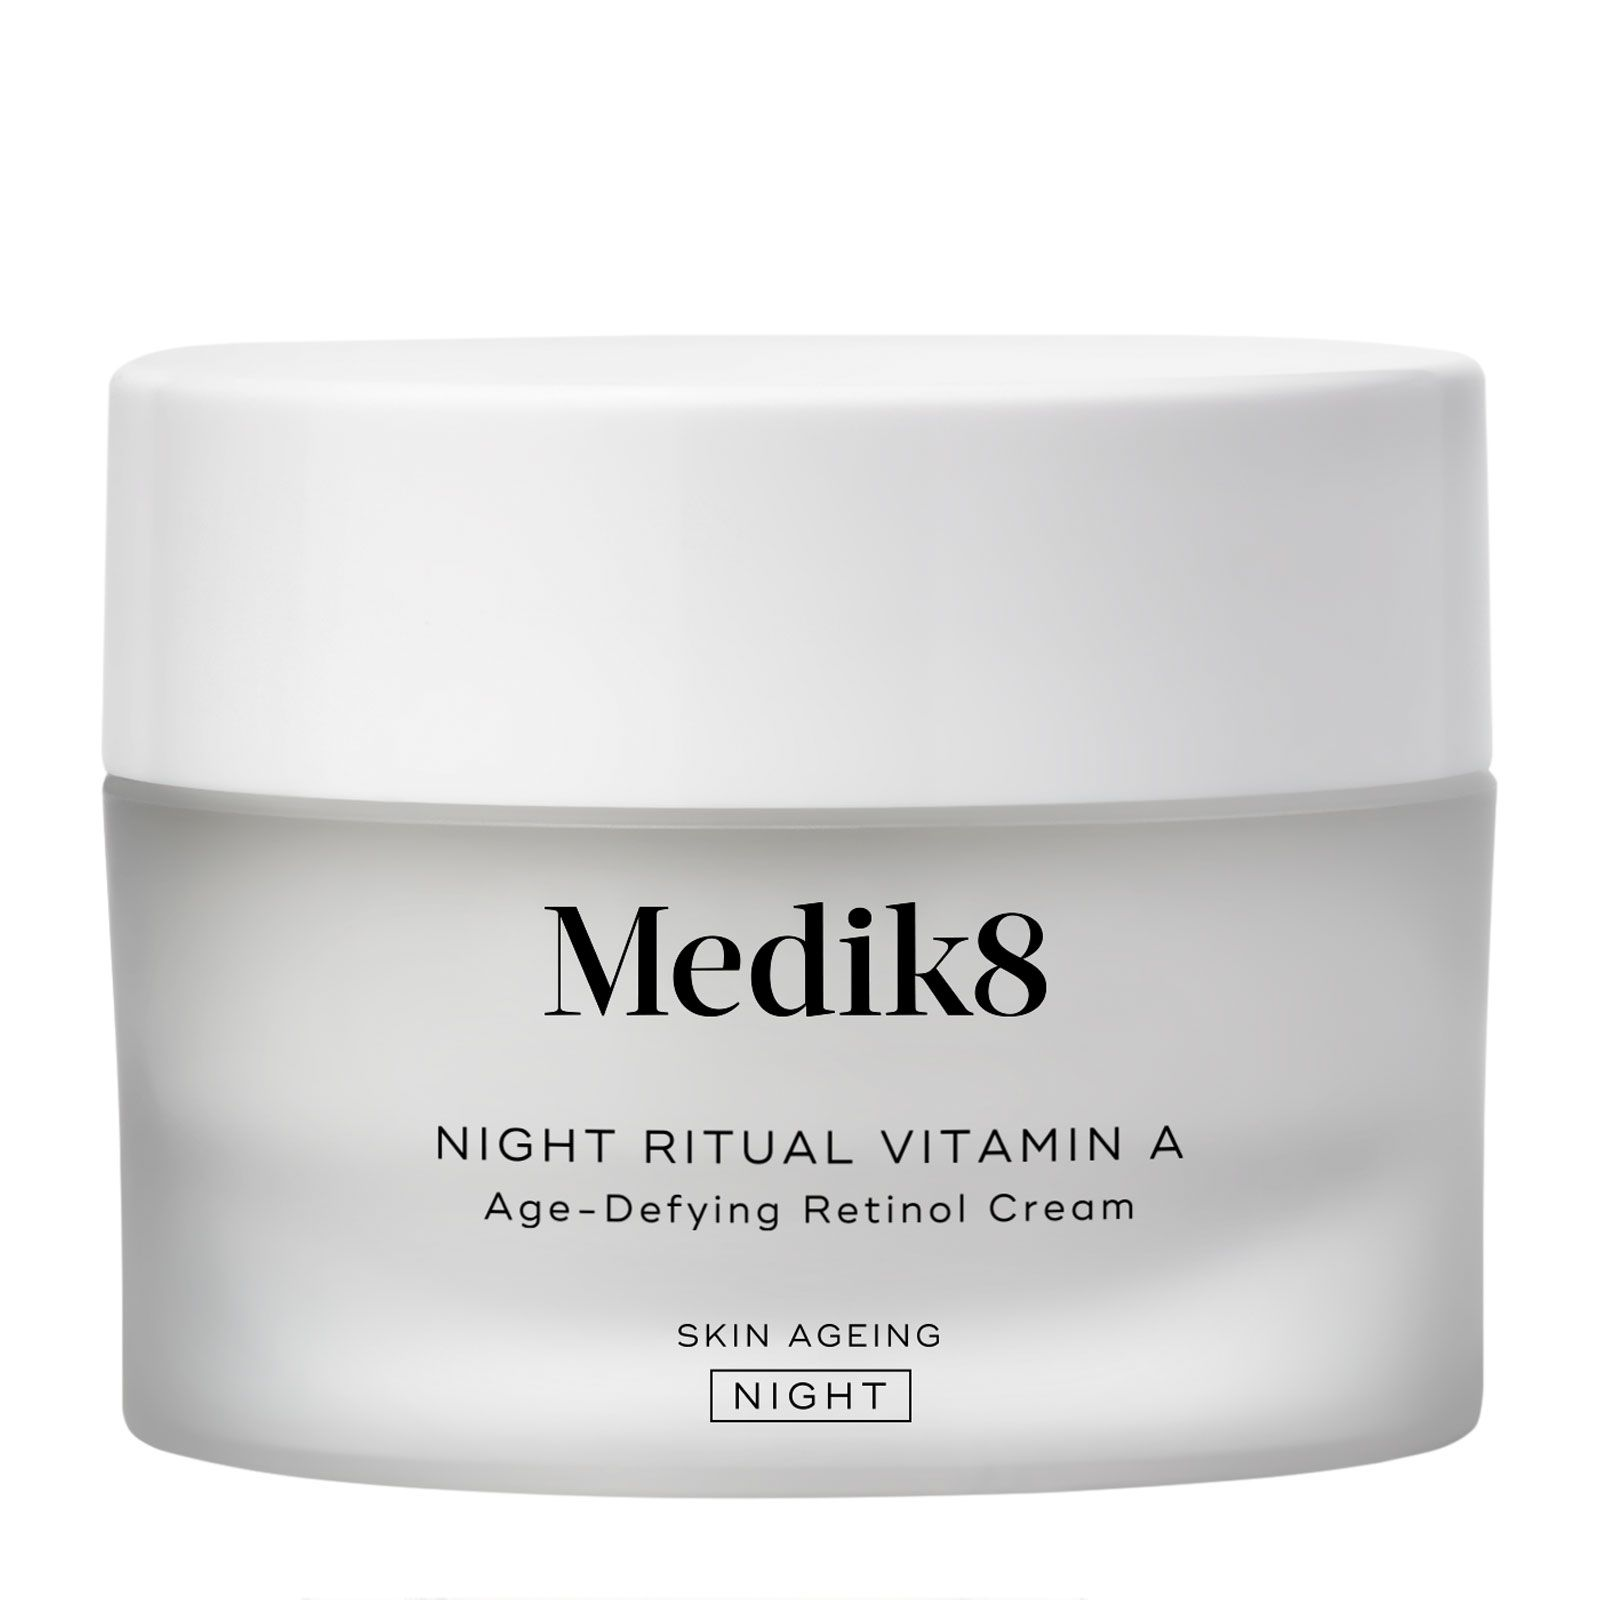 Discover Medik8 Night Ritual Vitamin A Cream, a rich, rejuvenating vitamin A cream that delivers powerful anti-ageing complex deep into the skin. Working at night, it nourishes to leave skin hydrated and visibly more youthful. The most effective ingredient in anti-ageing, vitamin A, improves skin texture, minimising the appearance of fine lines and wrinkles whilst balancing uneven skin tone. This nourishing cream uses advanced Time Release Technology to deliver vitamin A into the skin gradually